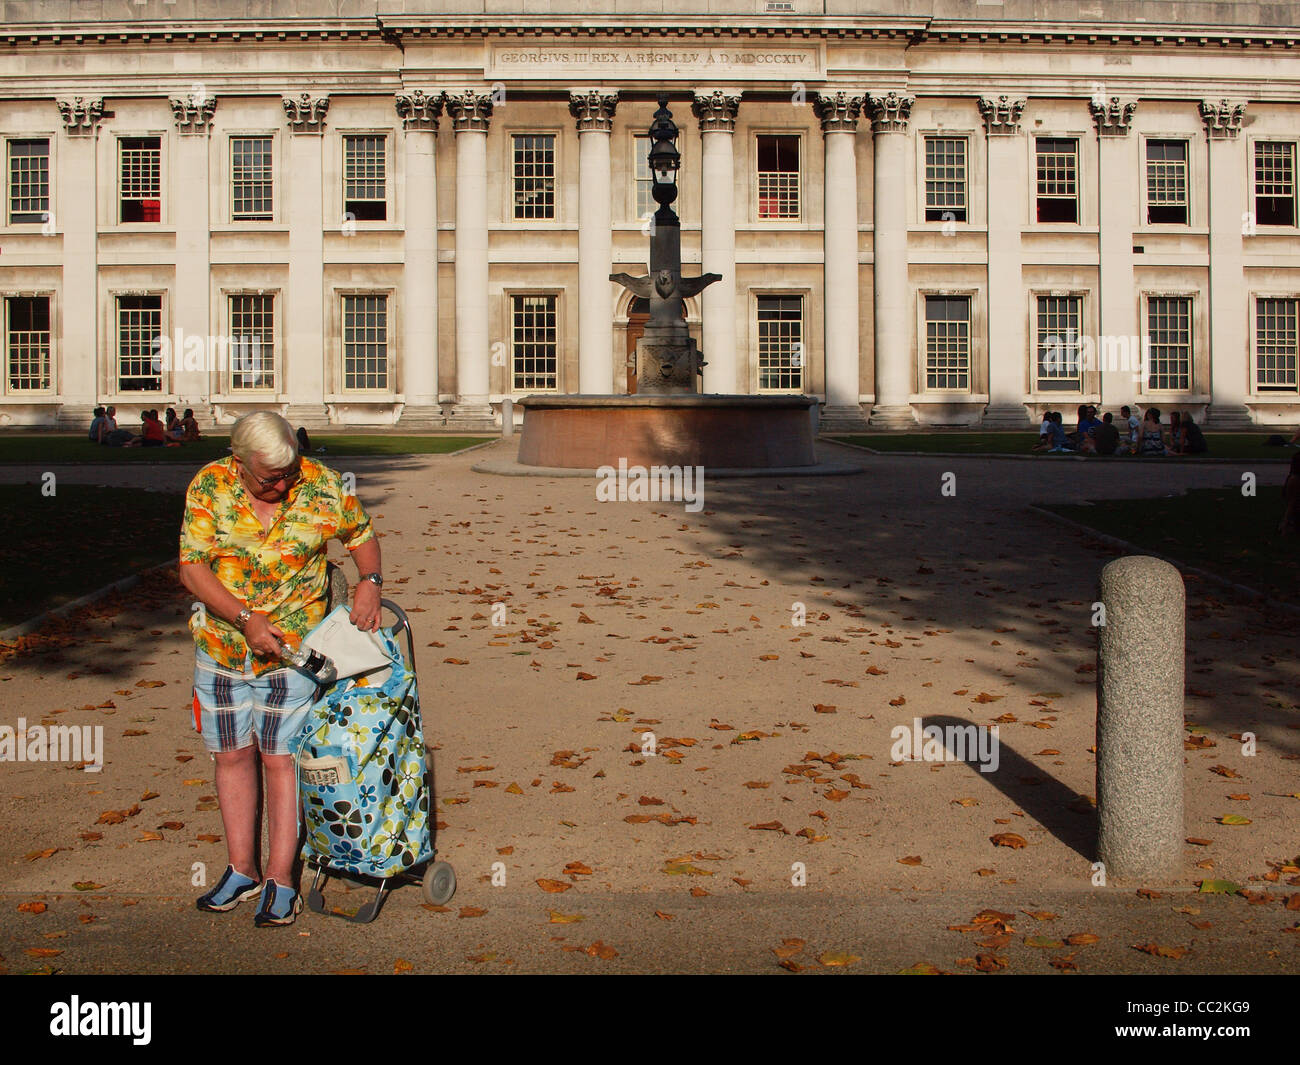 A man dressed for a hot summer's day during an unseasonal Autumnal heatwave, in Greenwich, London - Stock Image